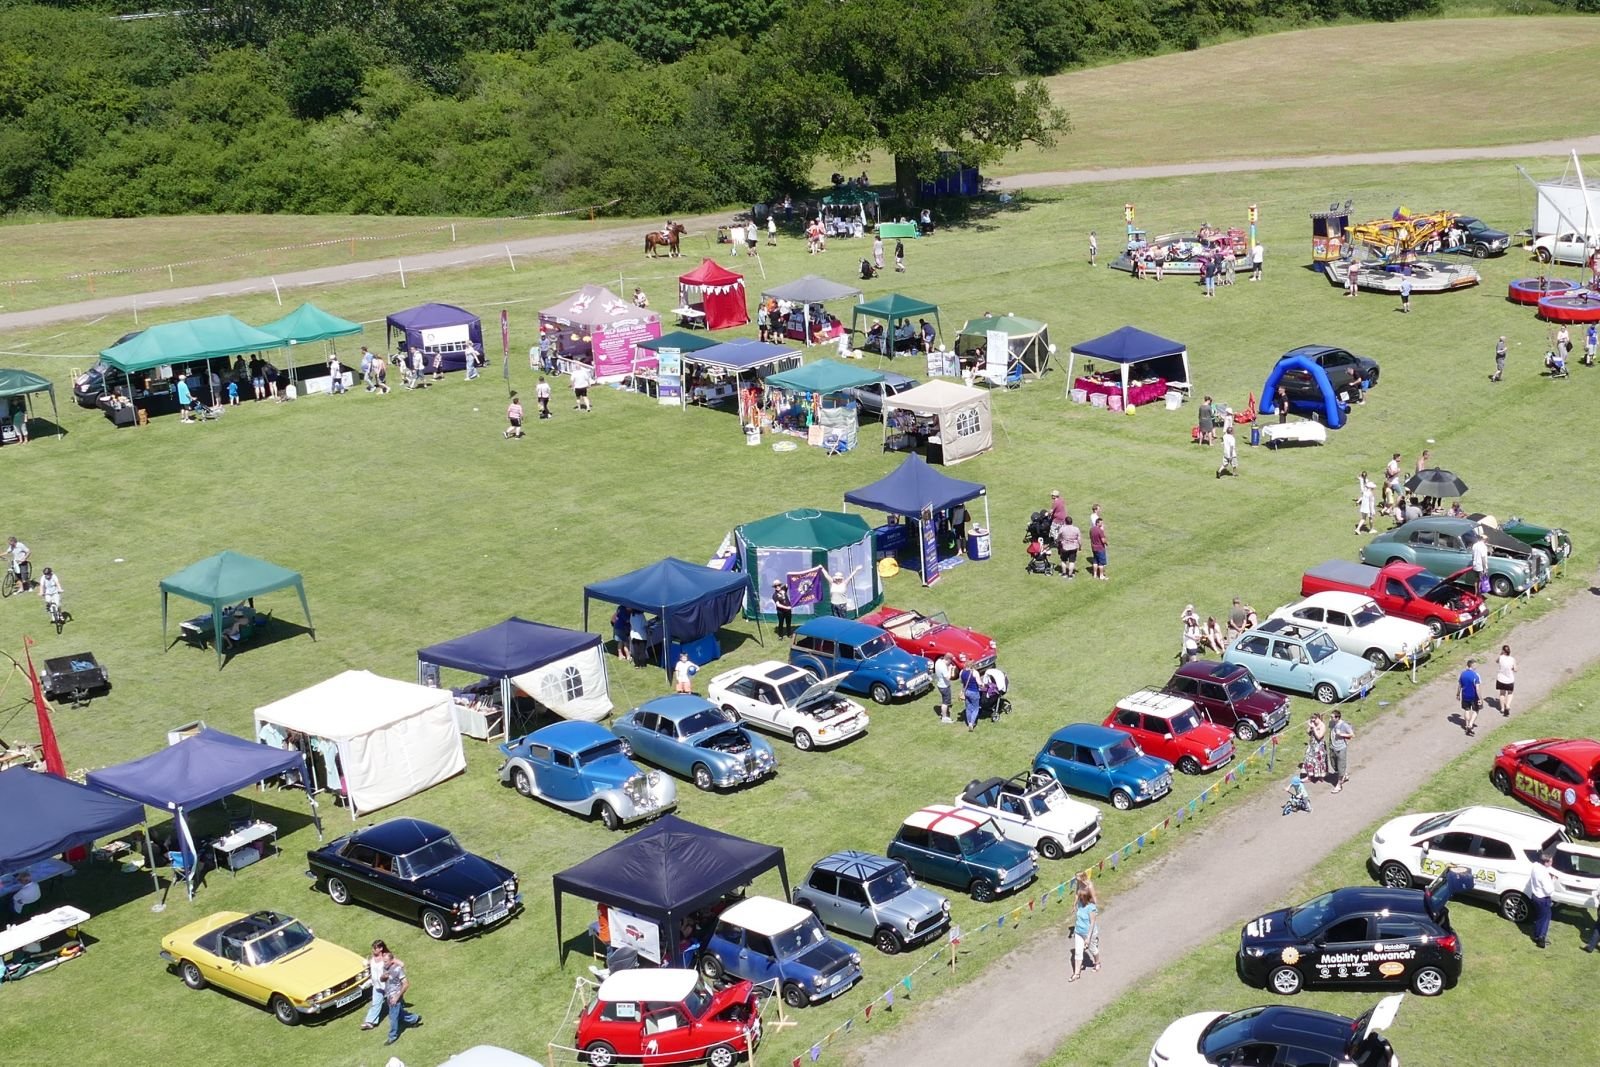 Arial View of Lions Fun Day / Green Fair 2017